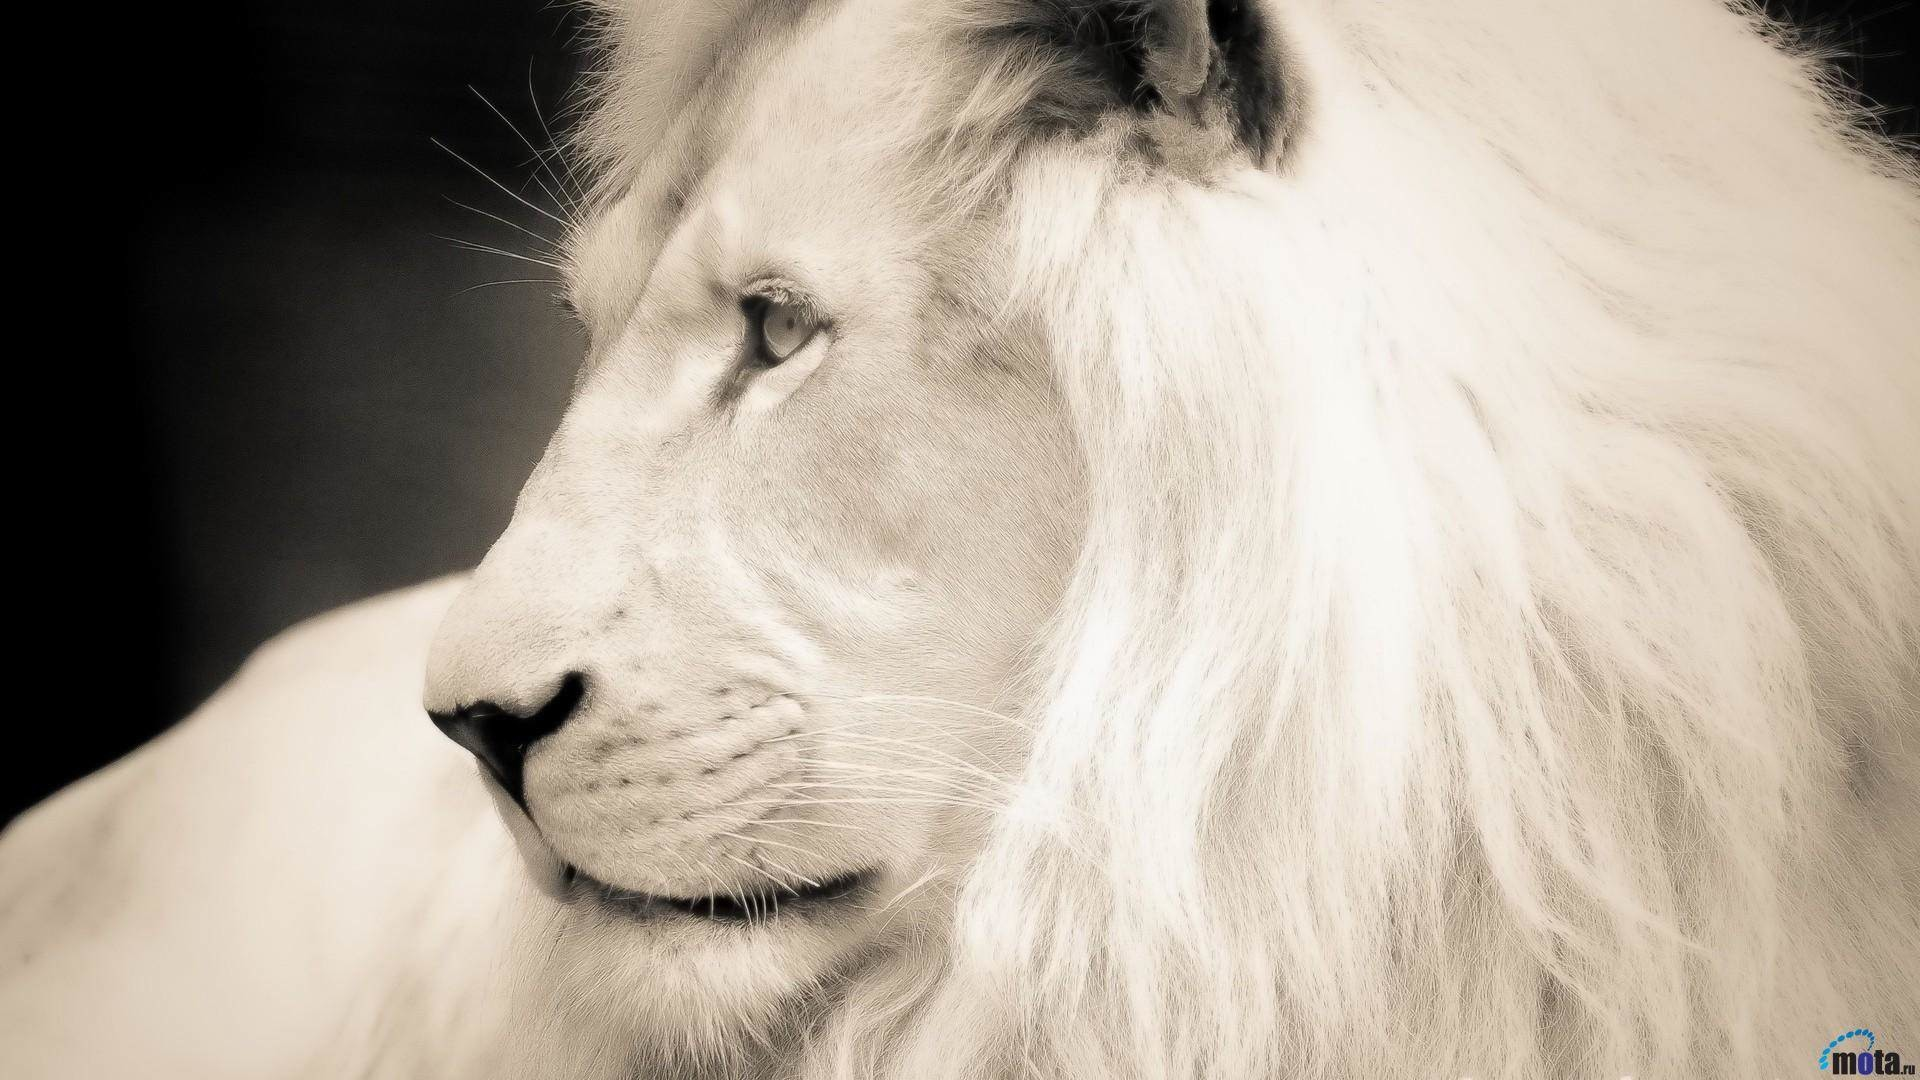 1920x1080 White Lion HD Wallpapers Backgrounds Wallpaper 1920×1080 White Lion Images  | Adorable Wallpapers